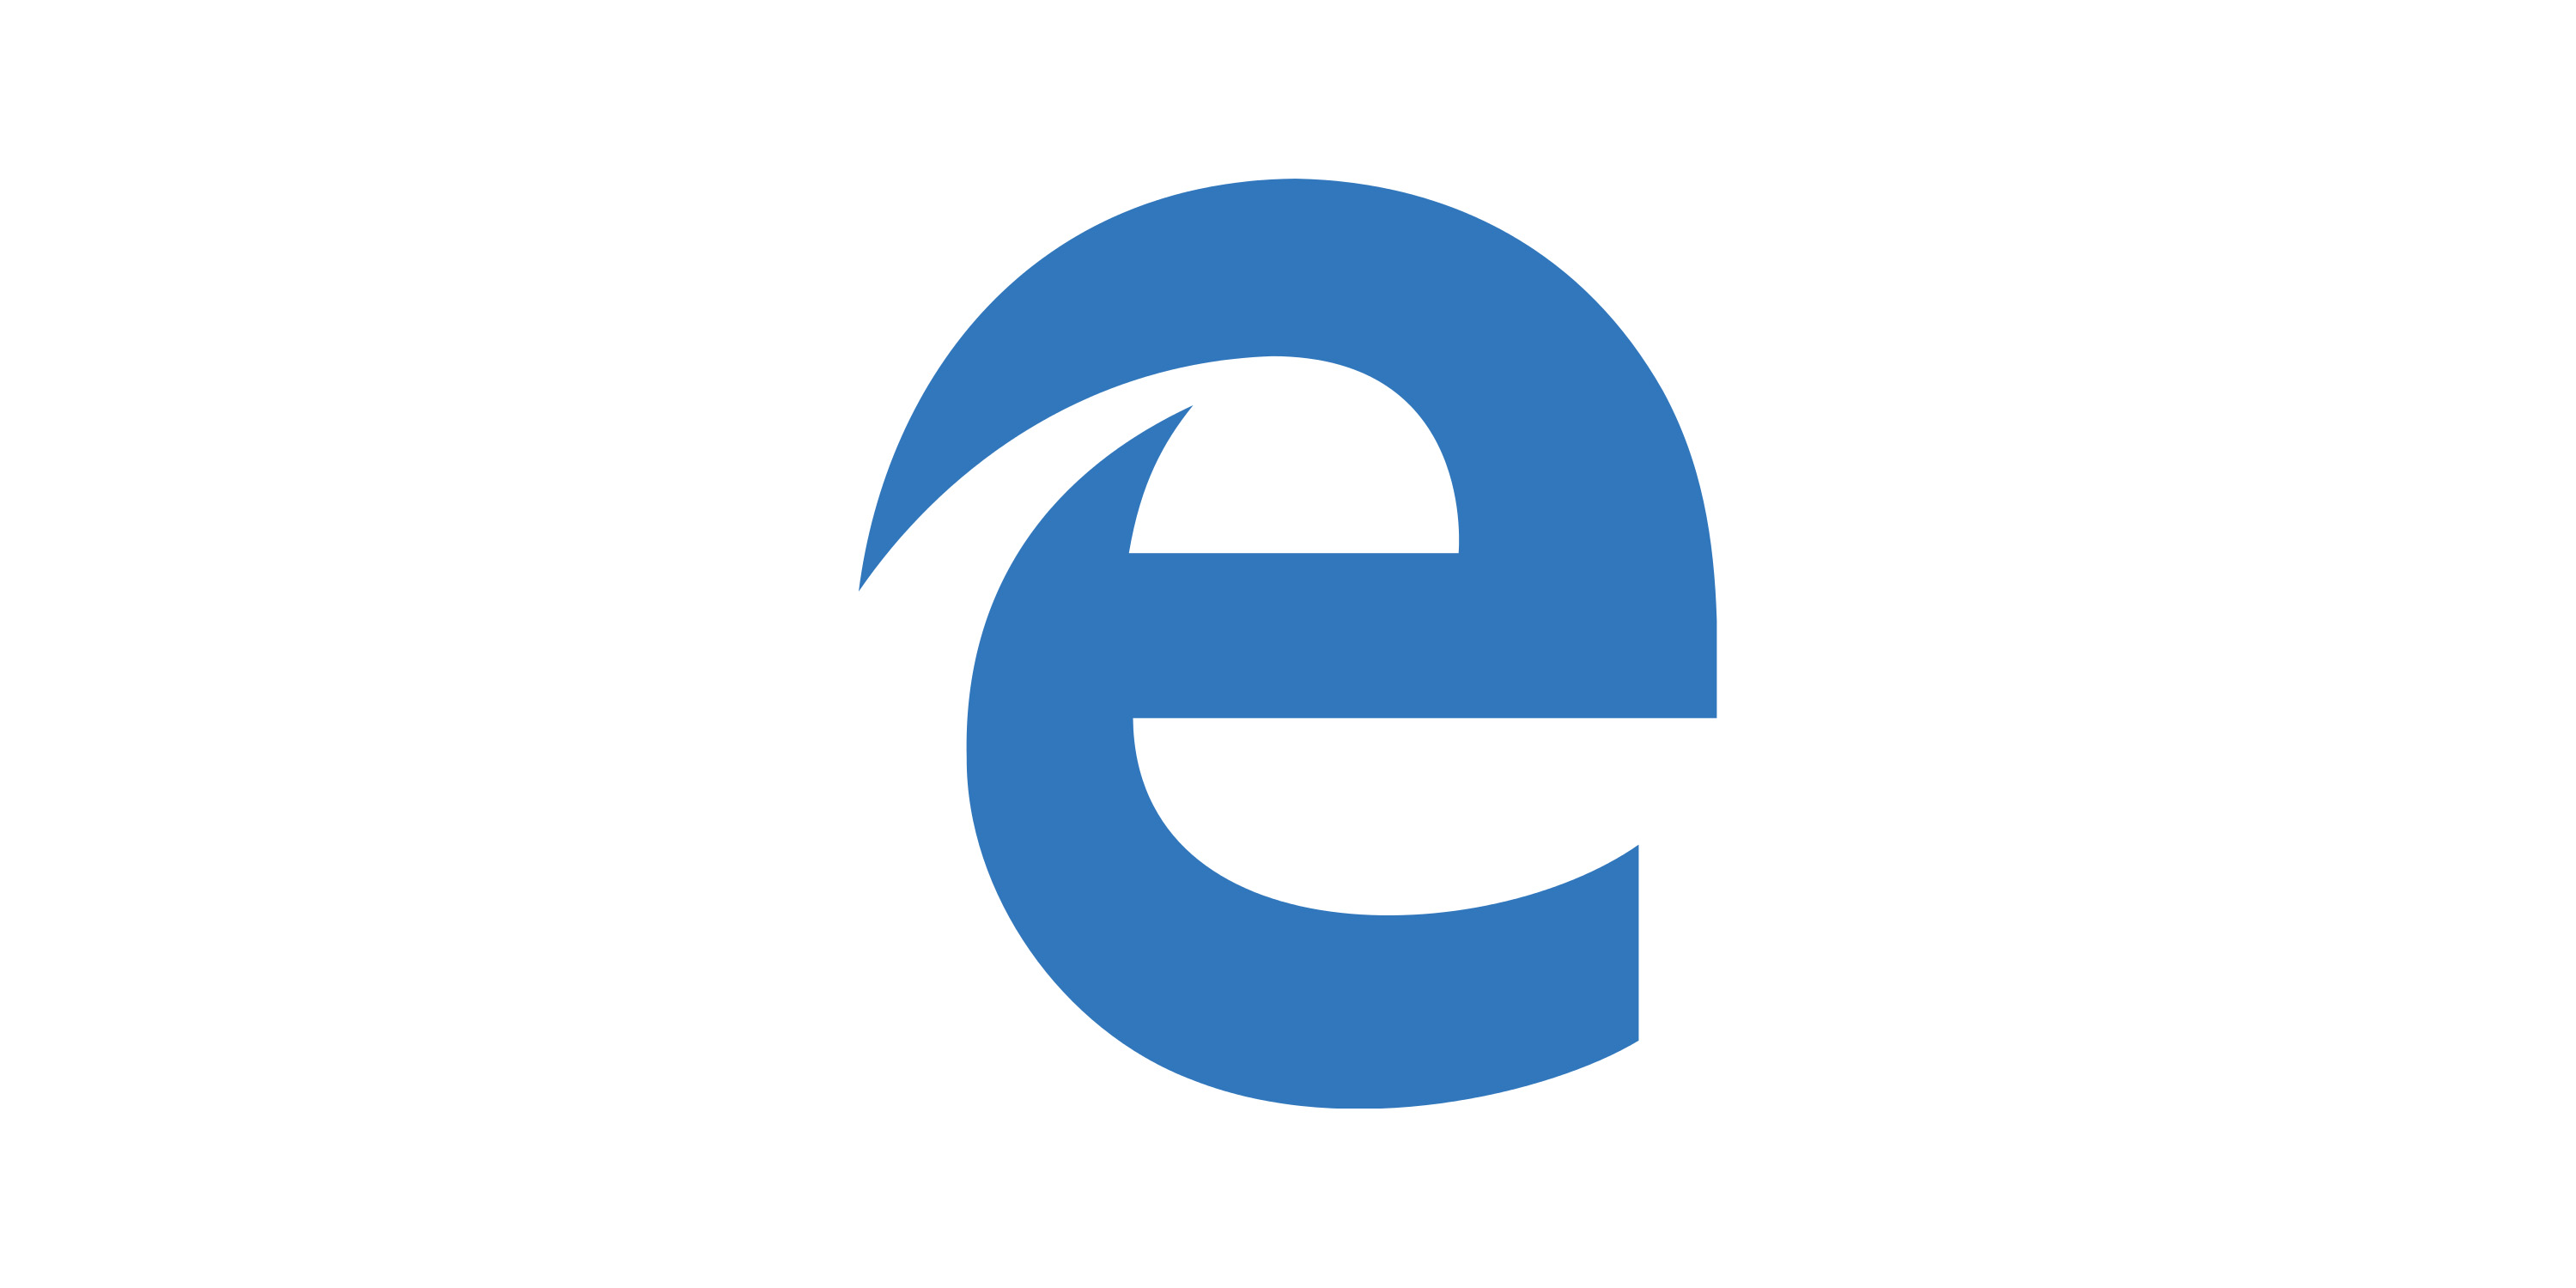 Microsoft pulls the plug on original Edge browser next year after replacing w/ Chromium version - 9to5Google